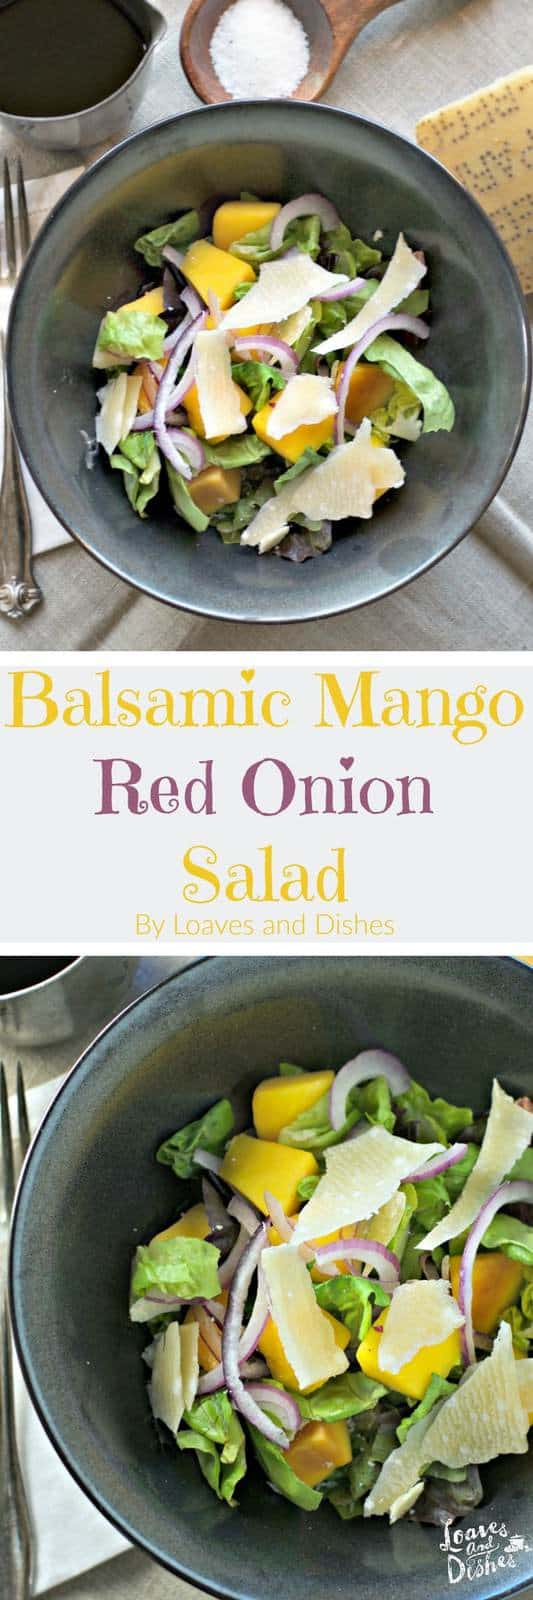 Easy delicious fresh dinner salad that includes all of the elements you love: tangy, sweet, nutritious. Perfect for a heavy meal or as a full meal itself.